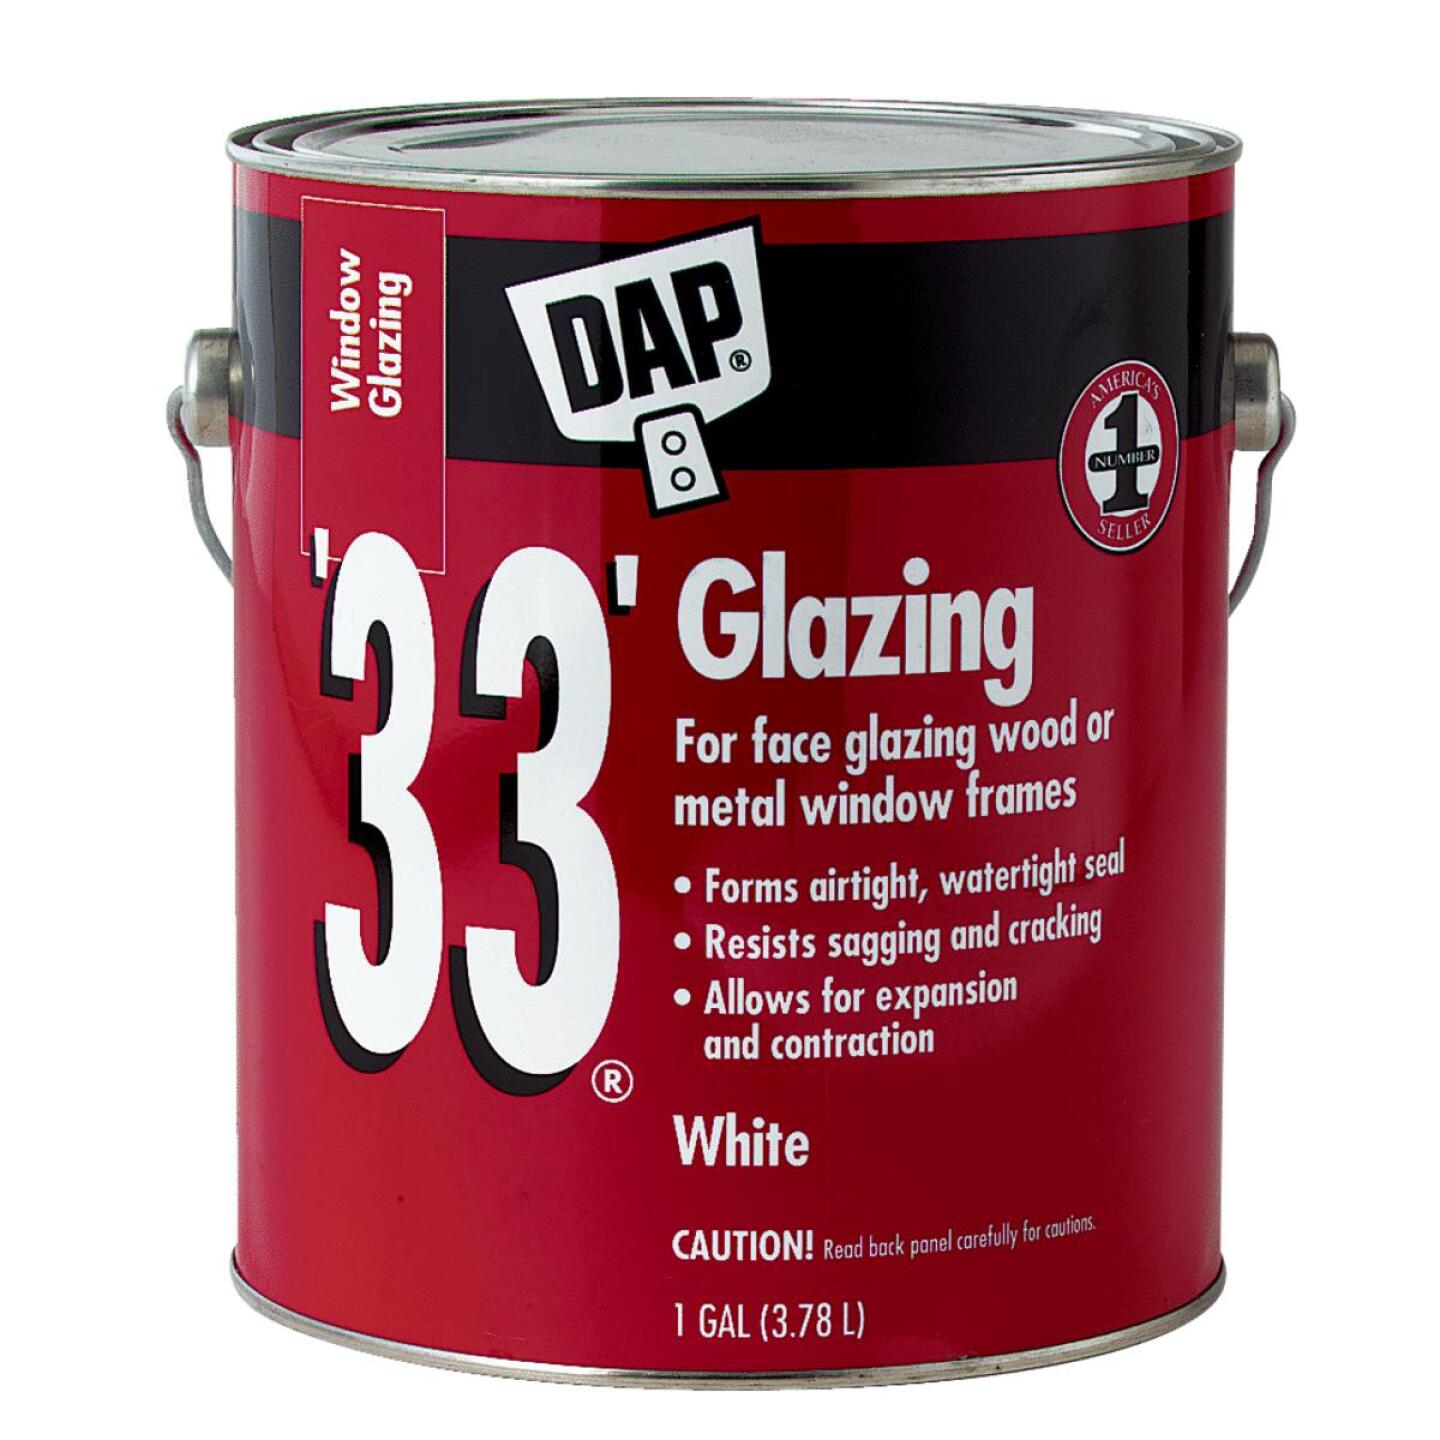 DAP 33 1 Gal. Glazing Compound Image 1